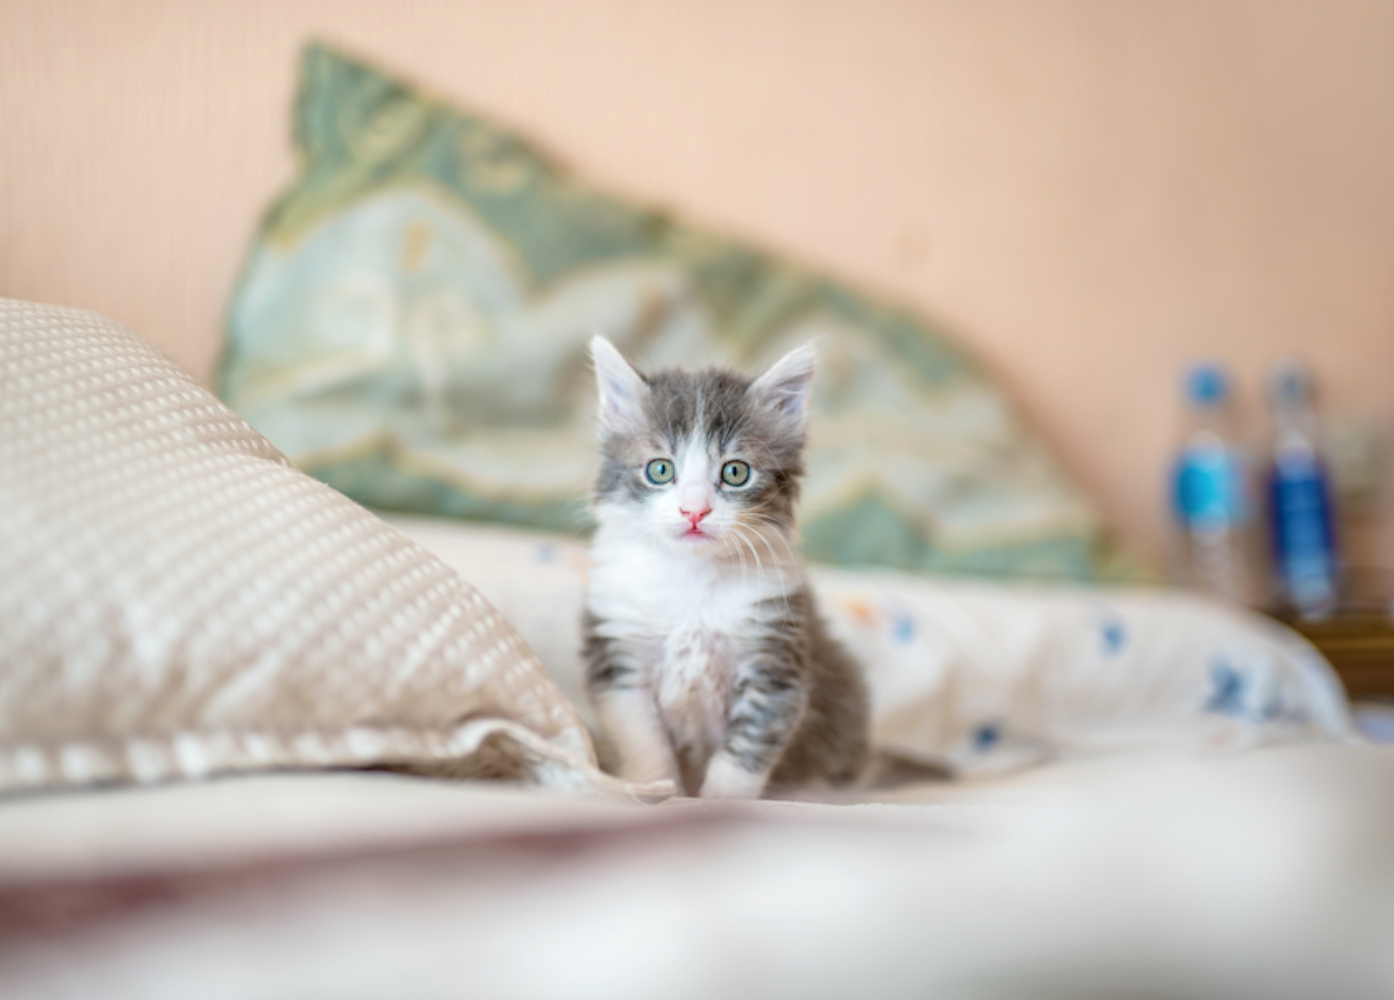 Kitten on bed; image by Kote Puerto, via Unsplash.com.